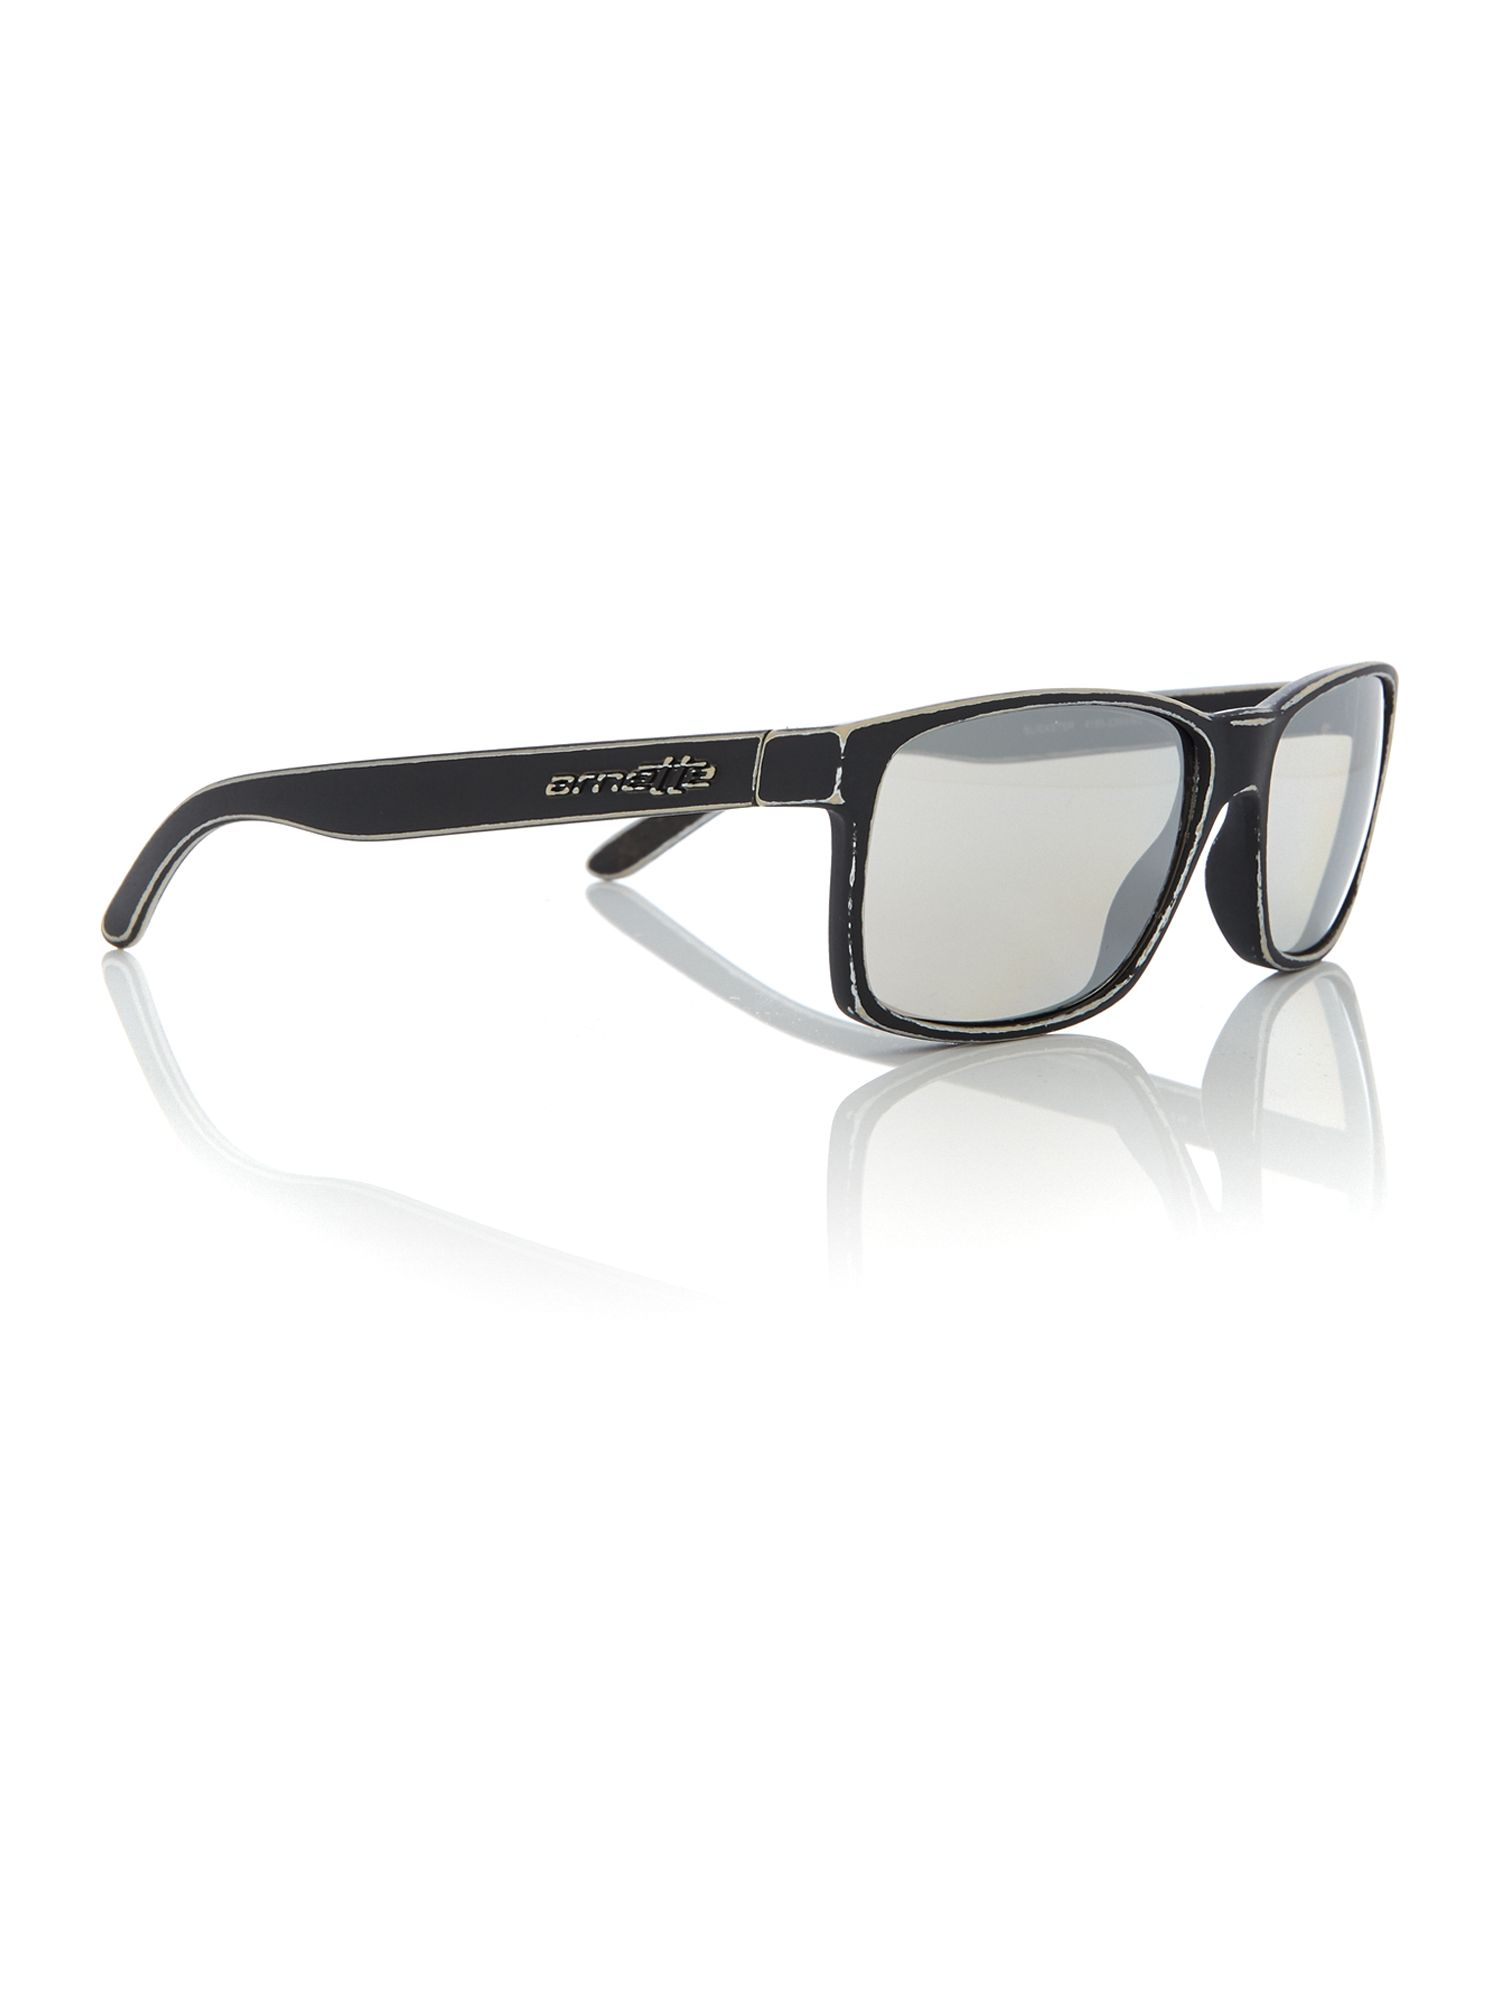 Arnette Black rectangle AN4185 sunglasses